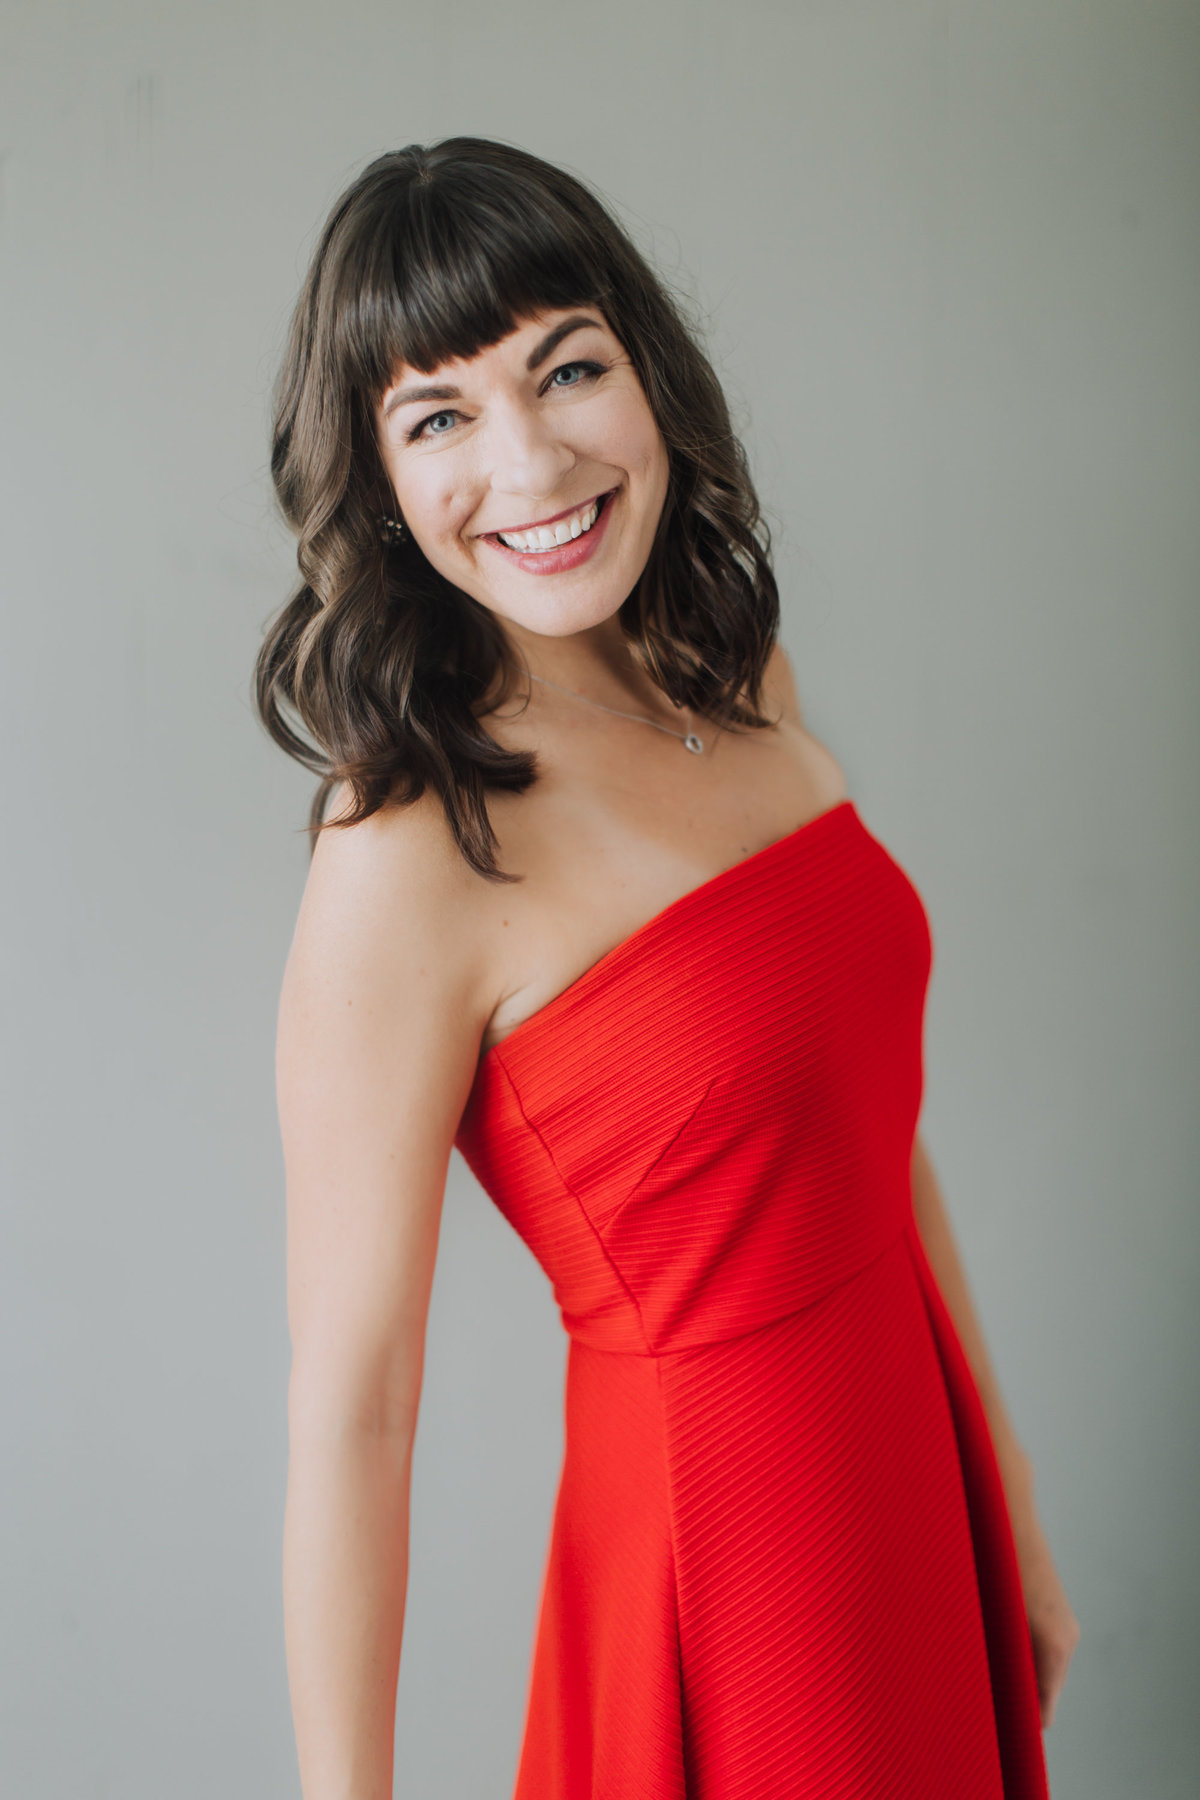 smiling woman red dress studio grey